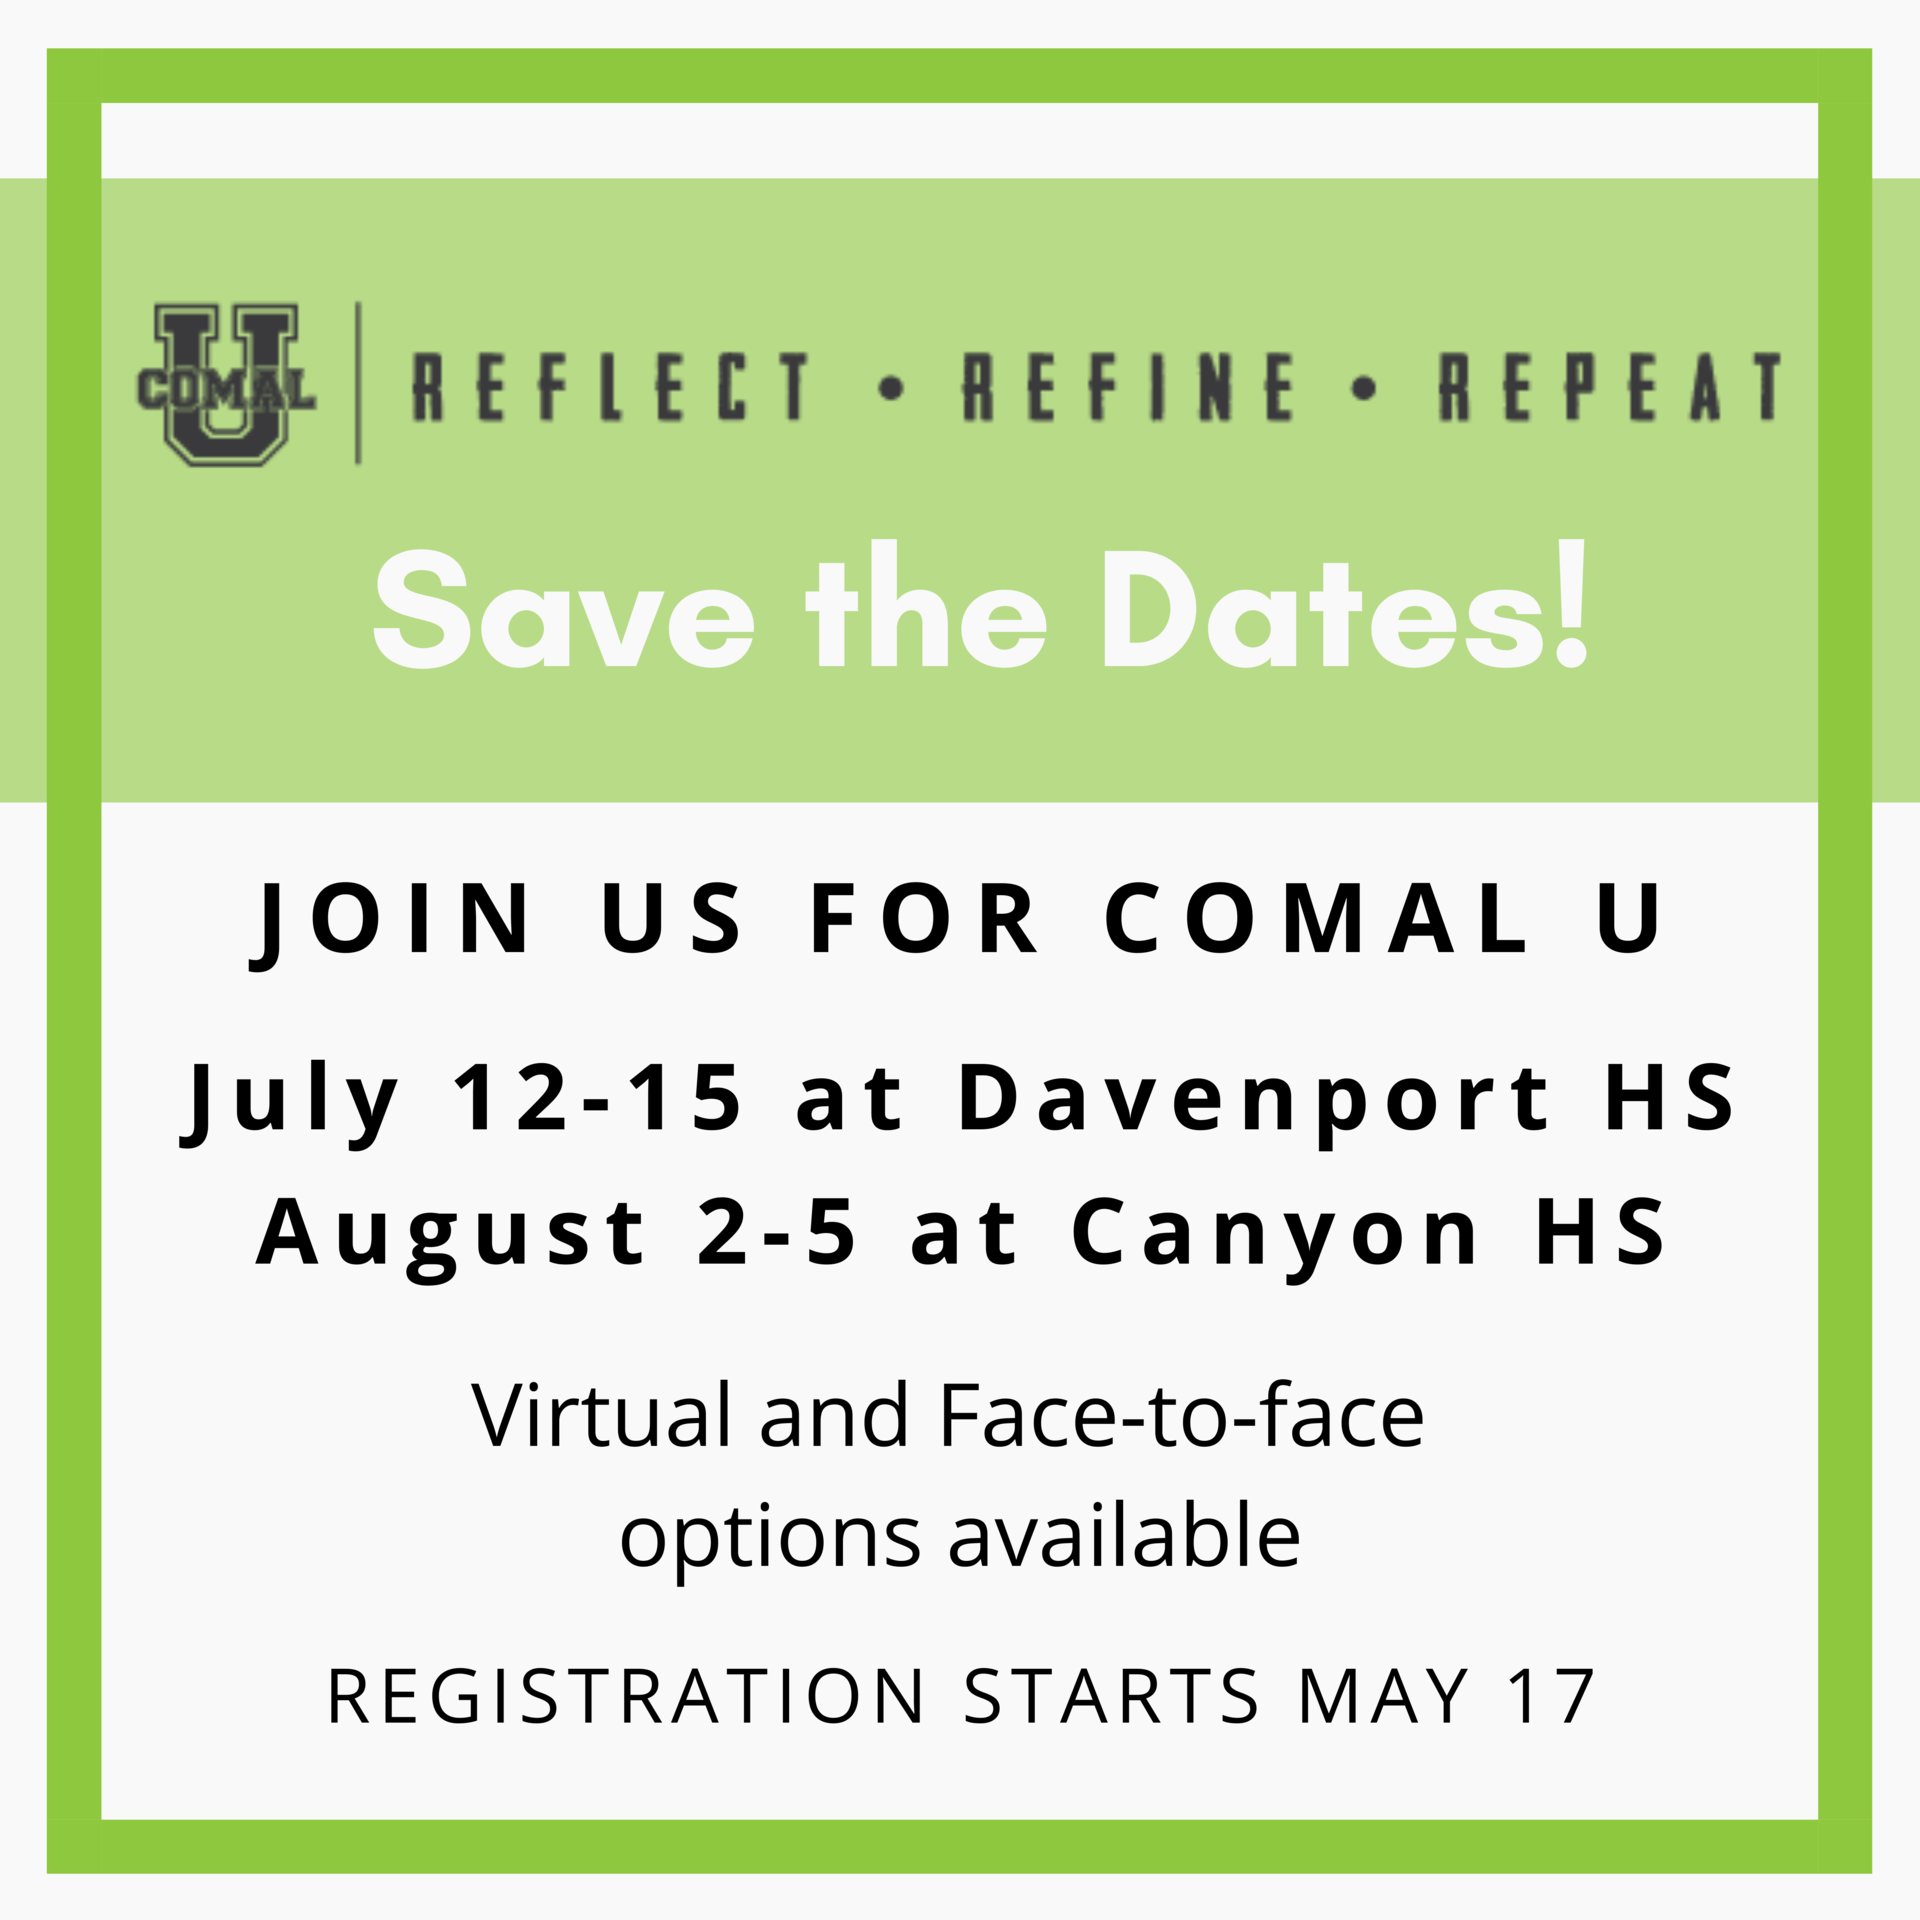 Save the date for Comal U 2021